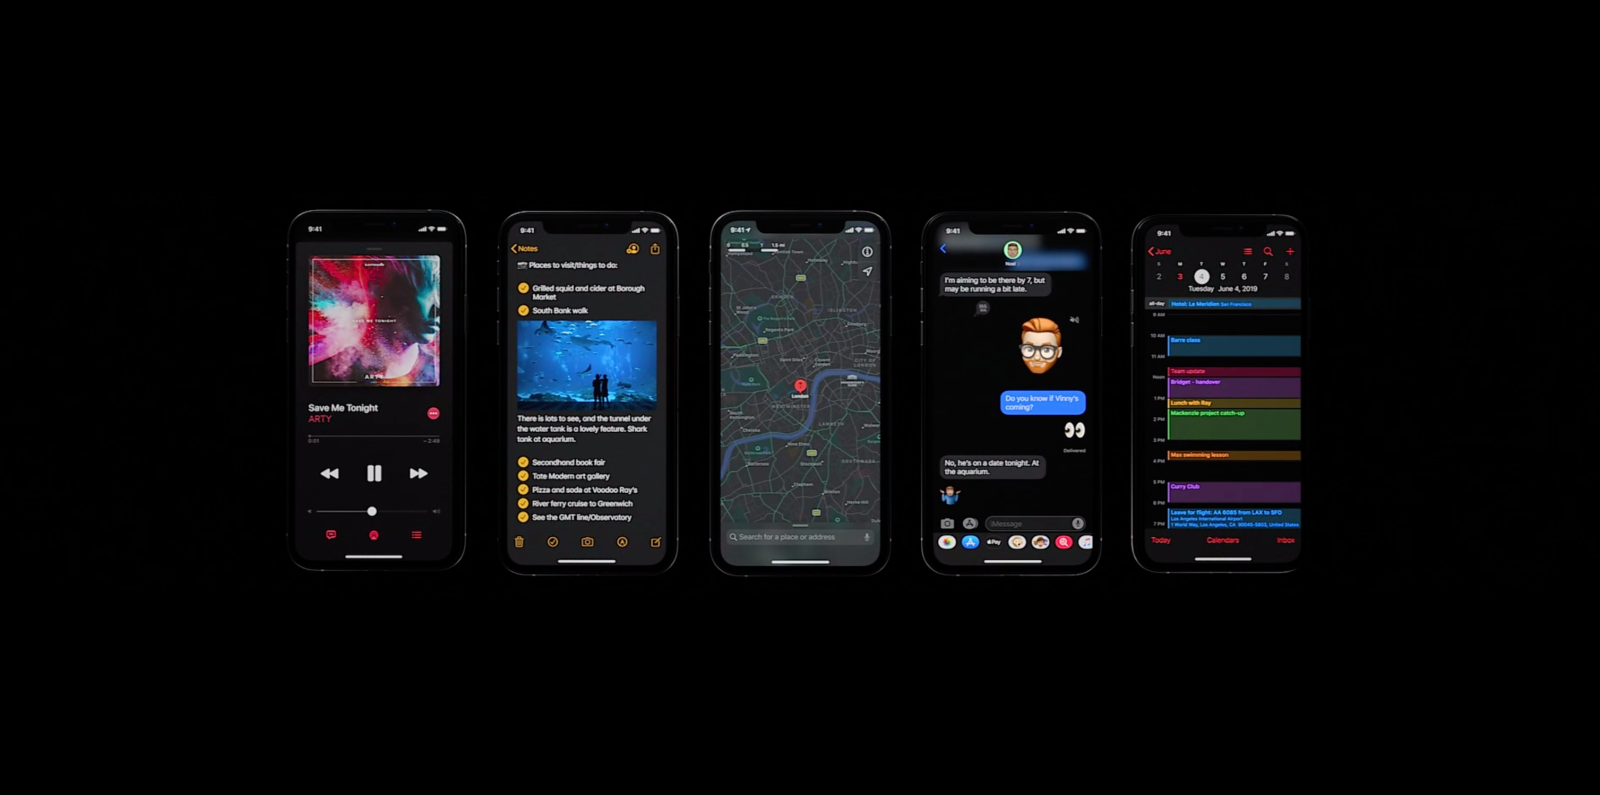 Top 7 iOS 13 Features for iPhone